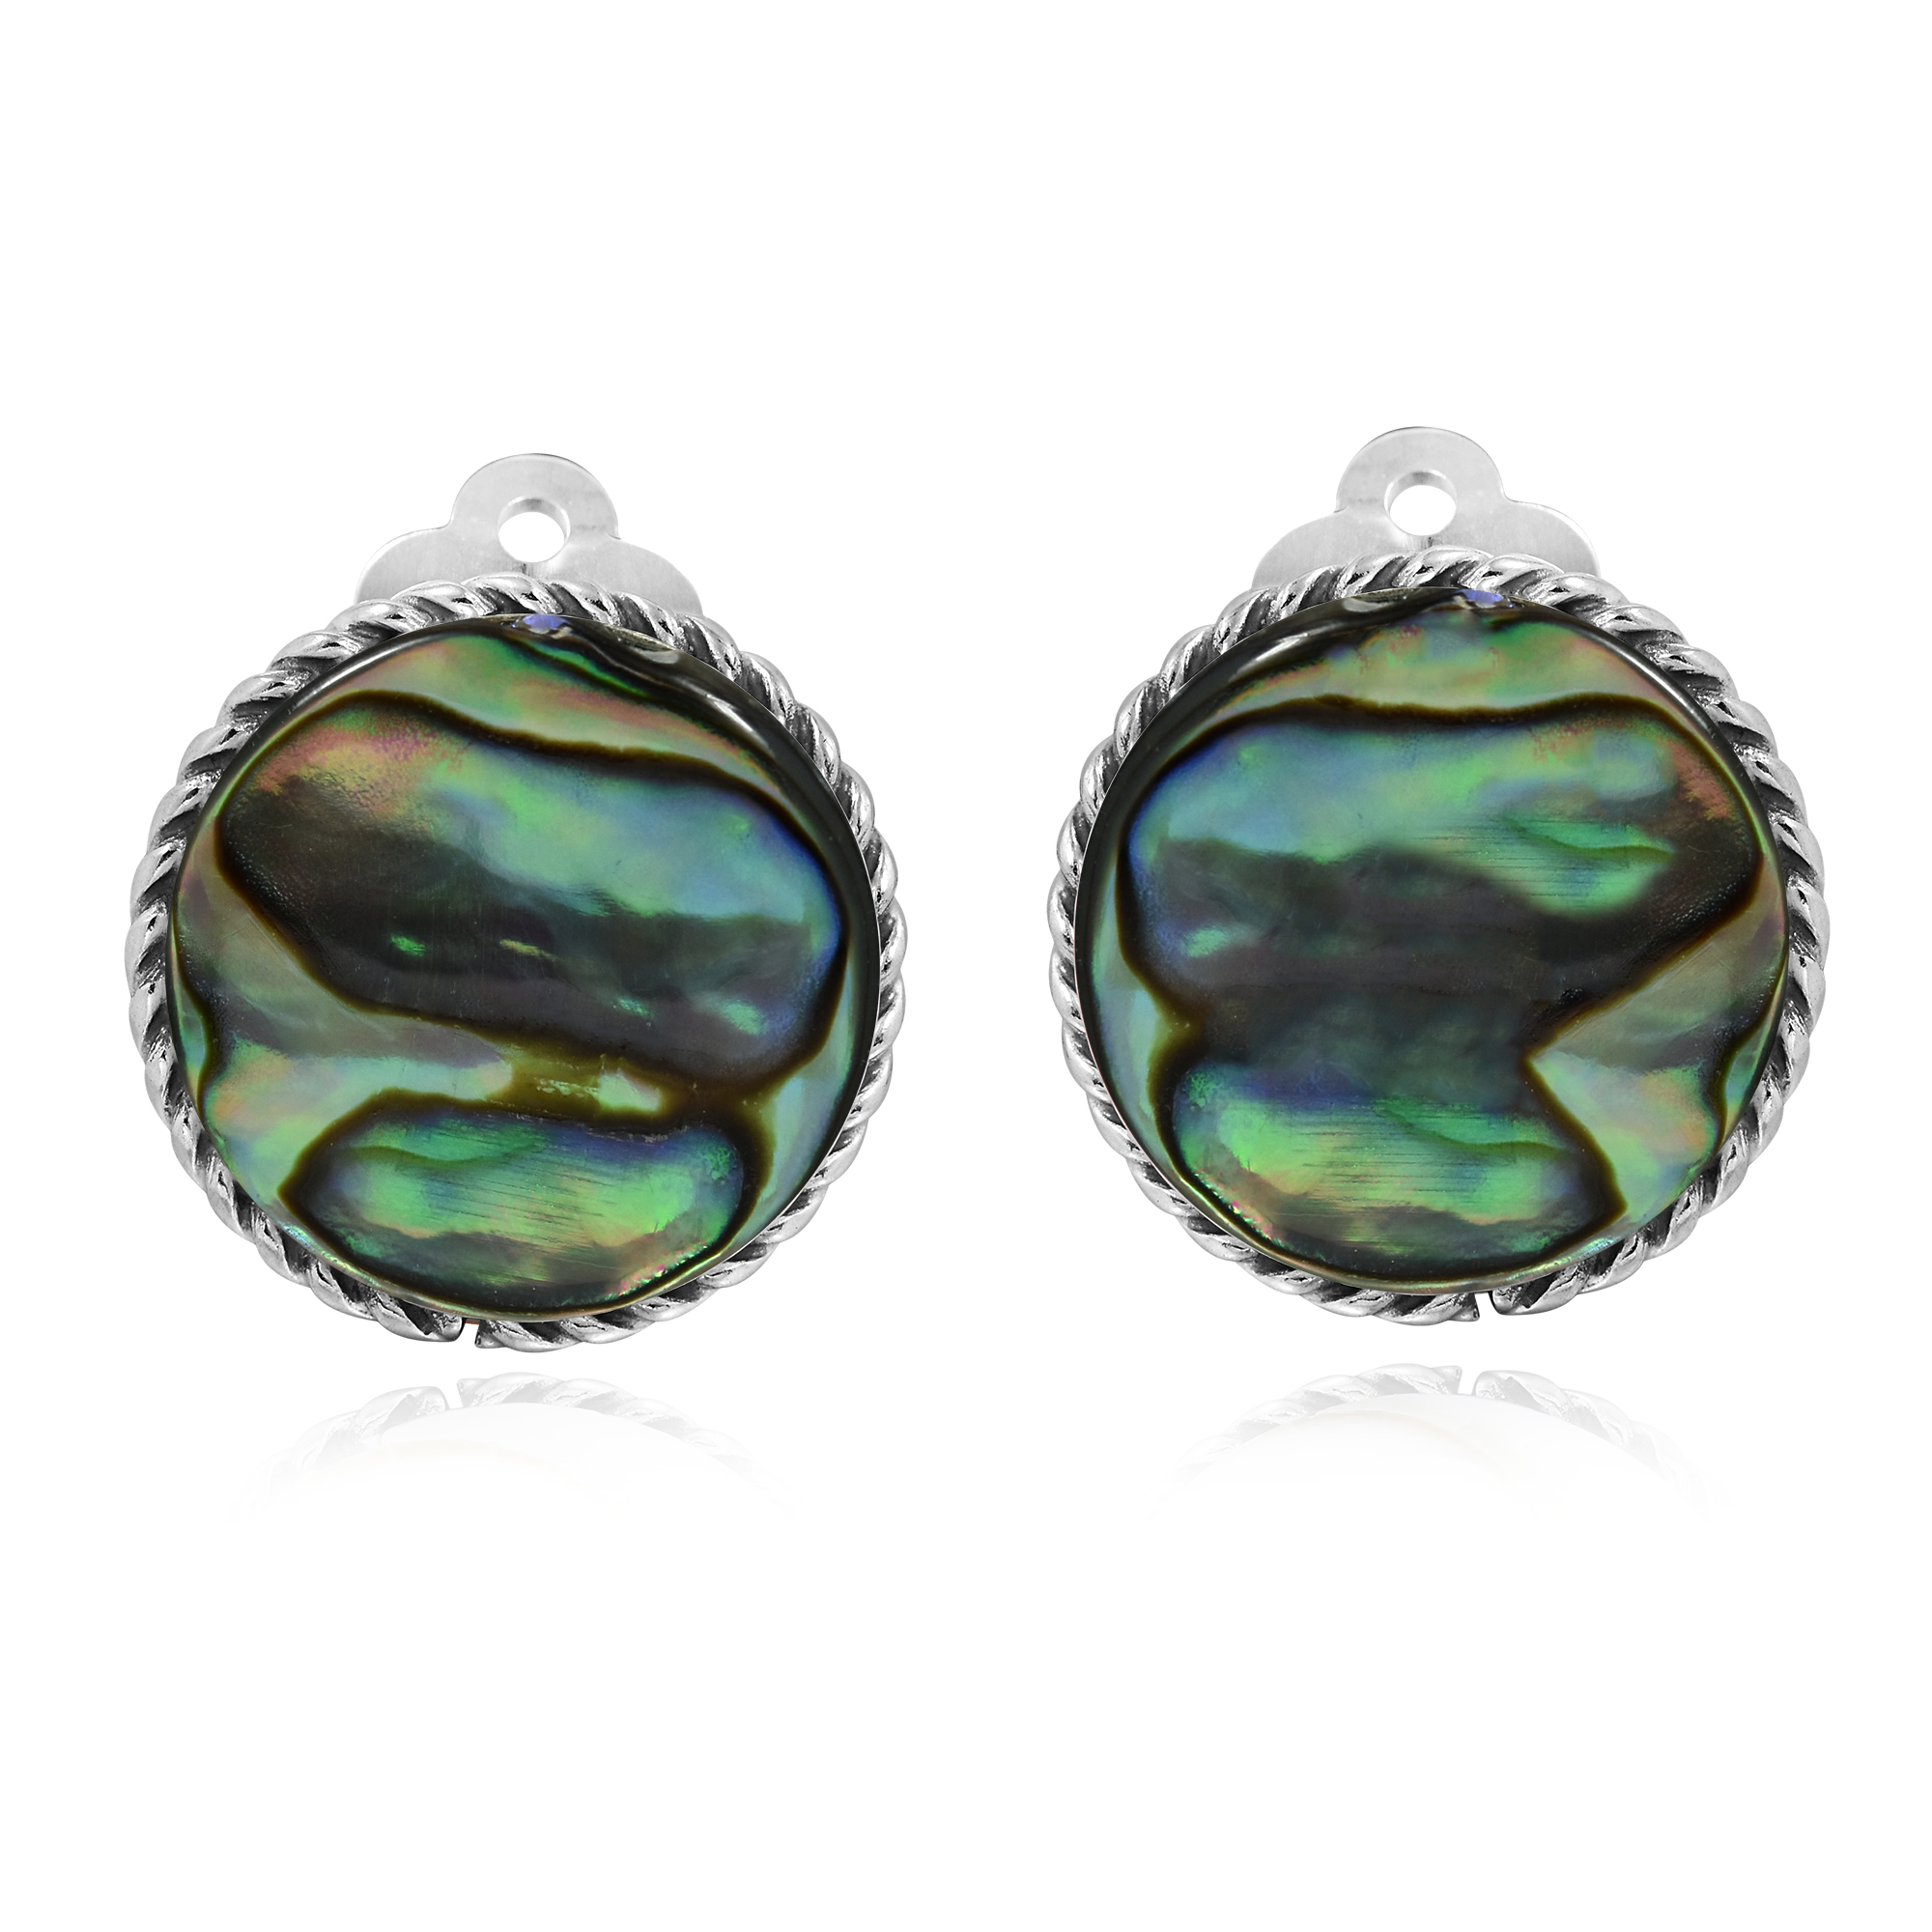 earring leaf marijuana earrings stud abl silver az abalone jewelry shell eam bling